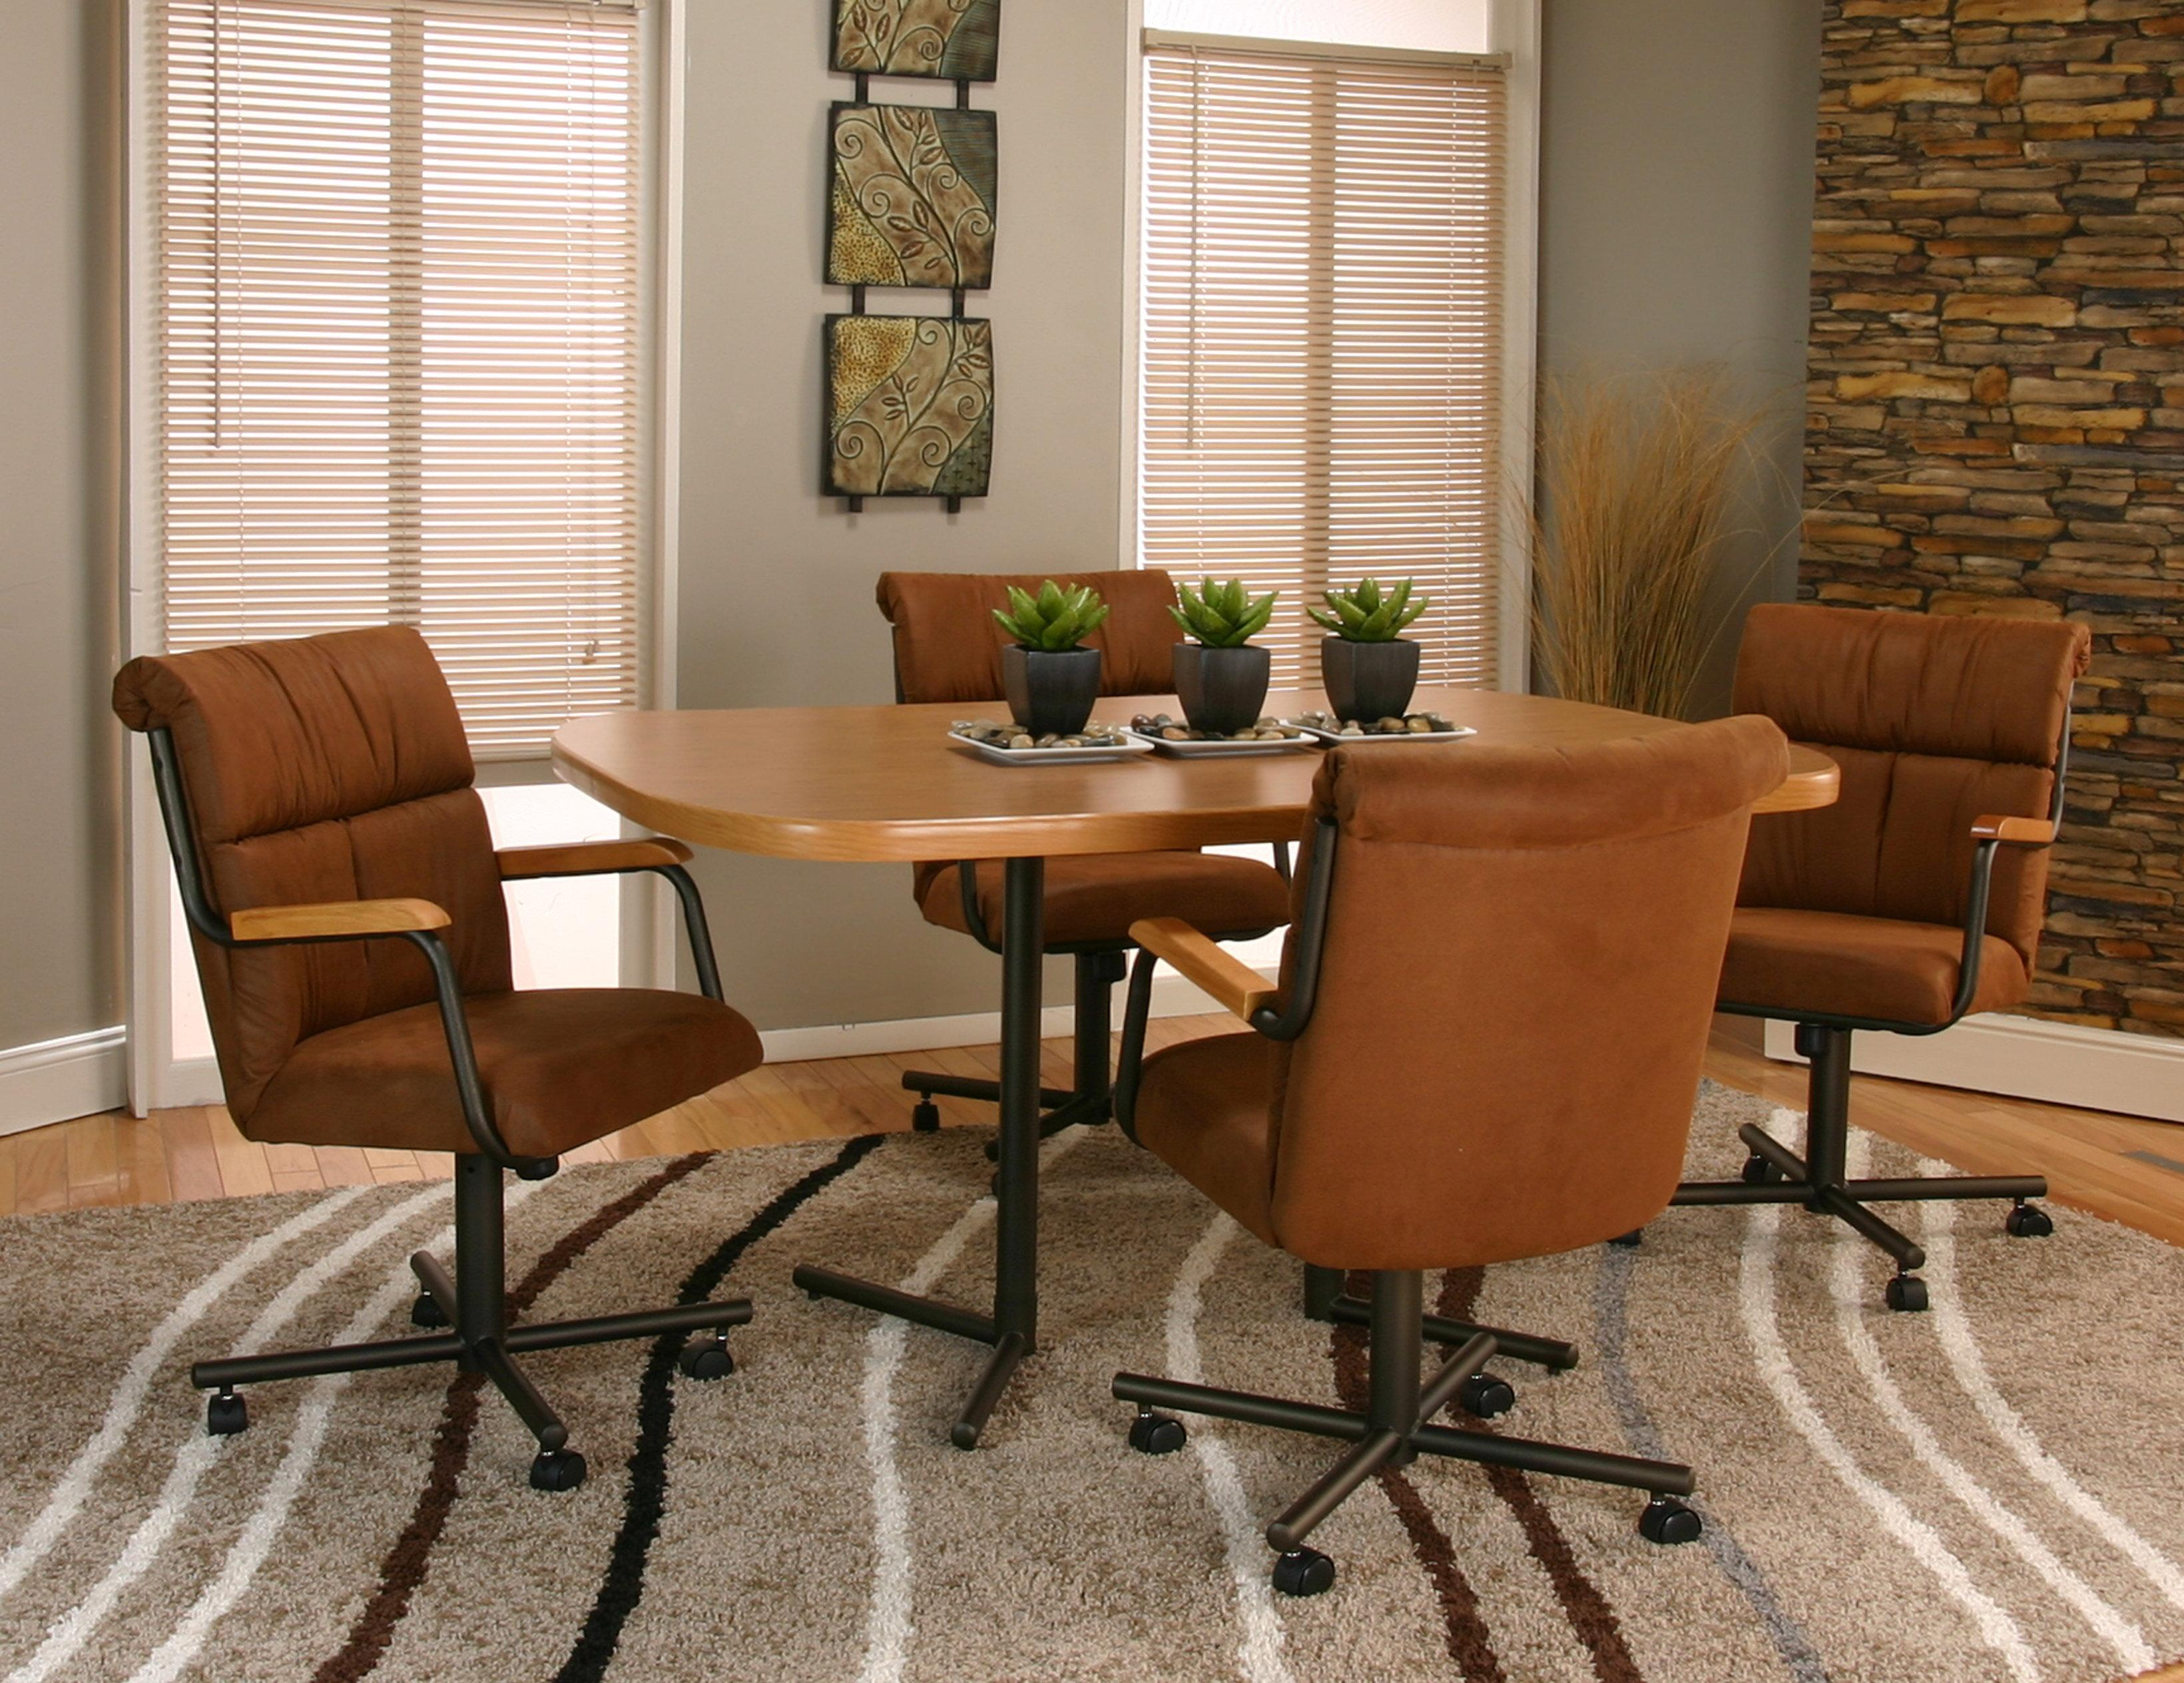 kitchen chairs with wheels Cramco Inc Landon Dining Arm Chair With Casters Wayside Furniture Dining Chair with Casters